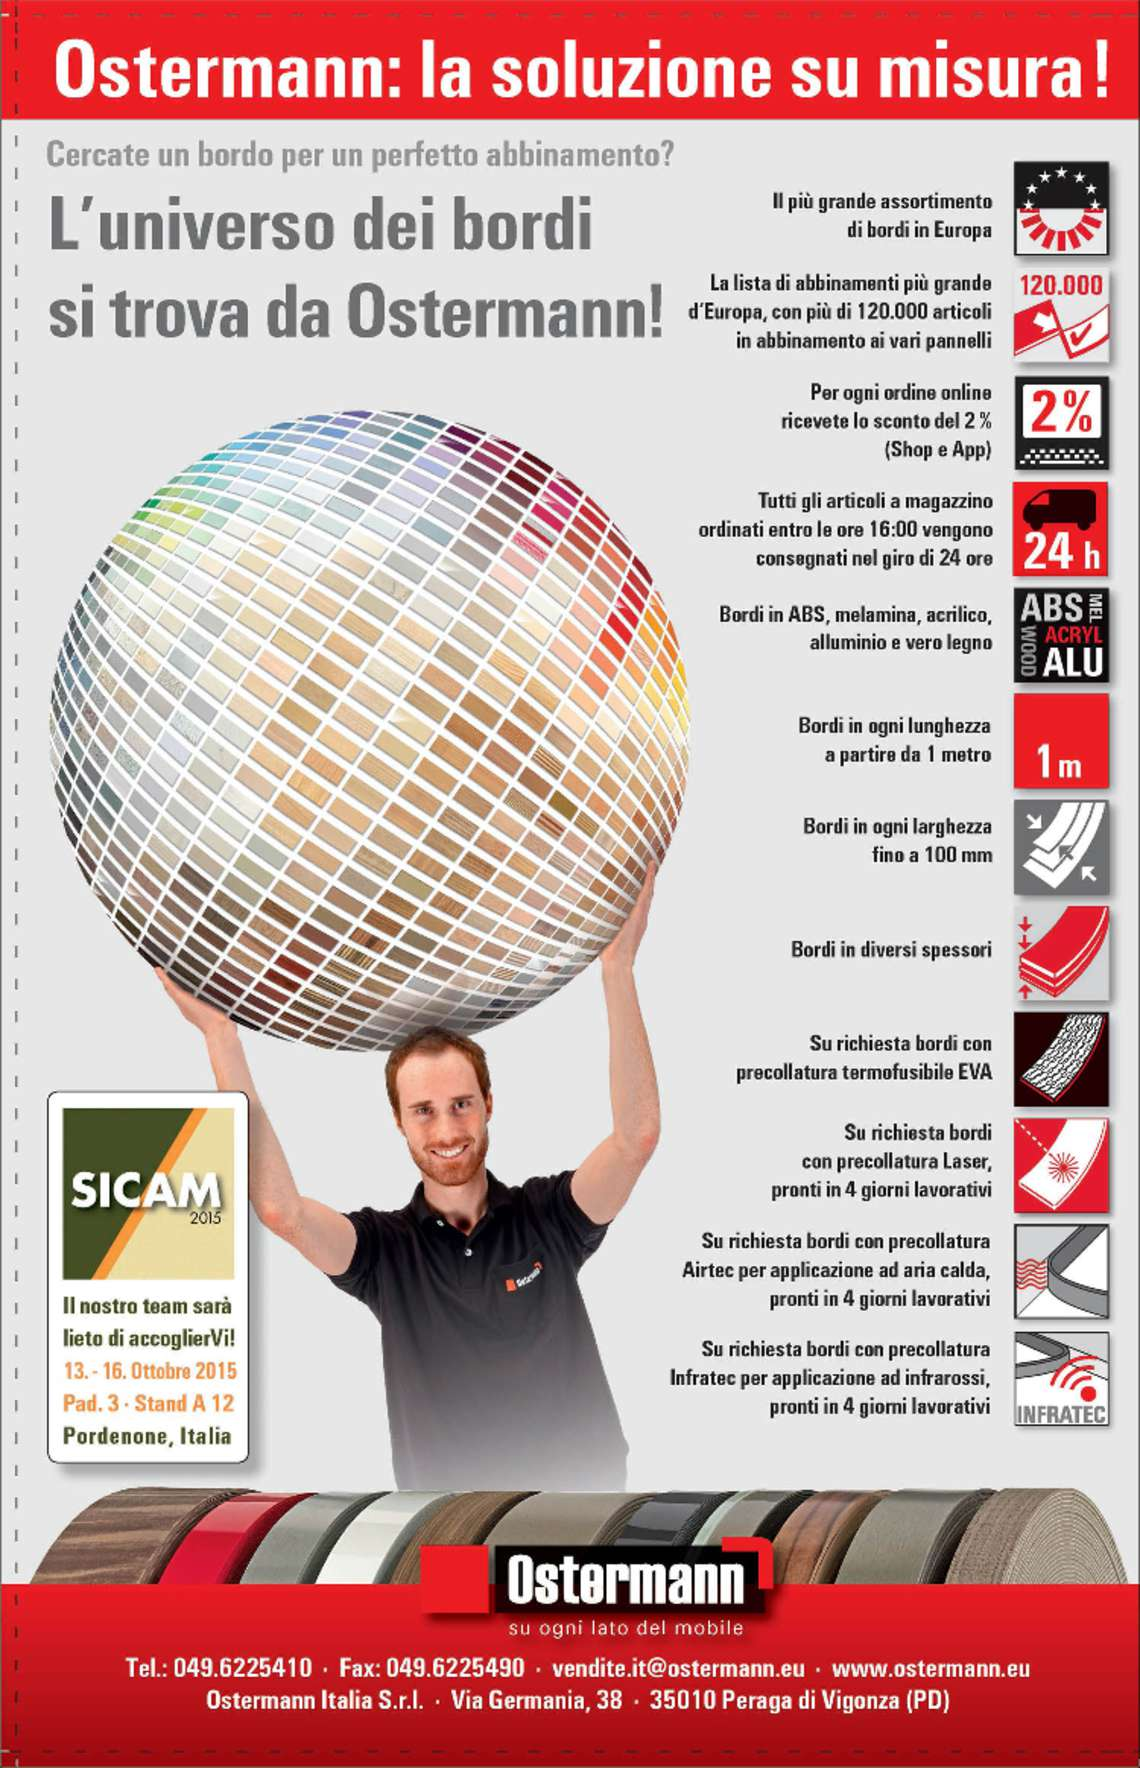 sicam-2015_journal_3_005.jpg